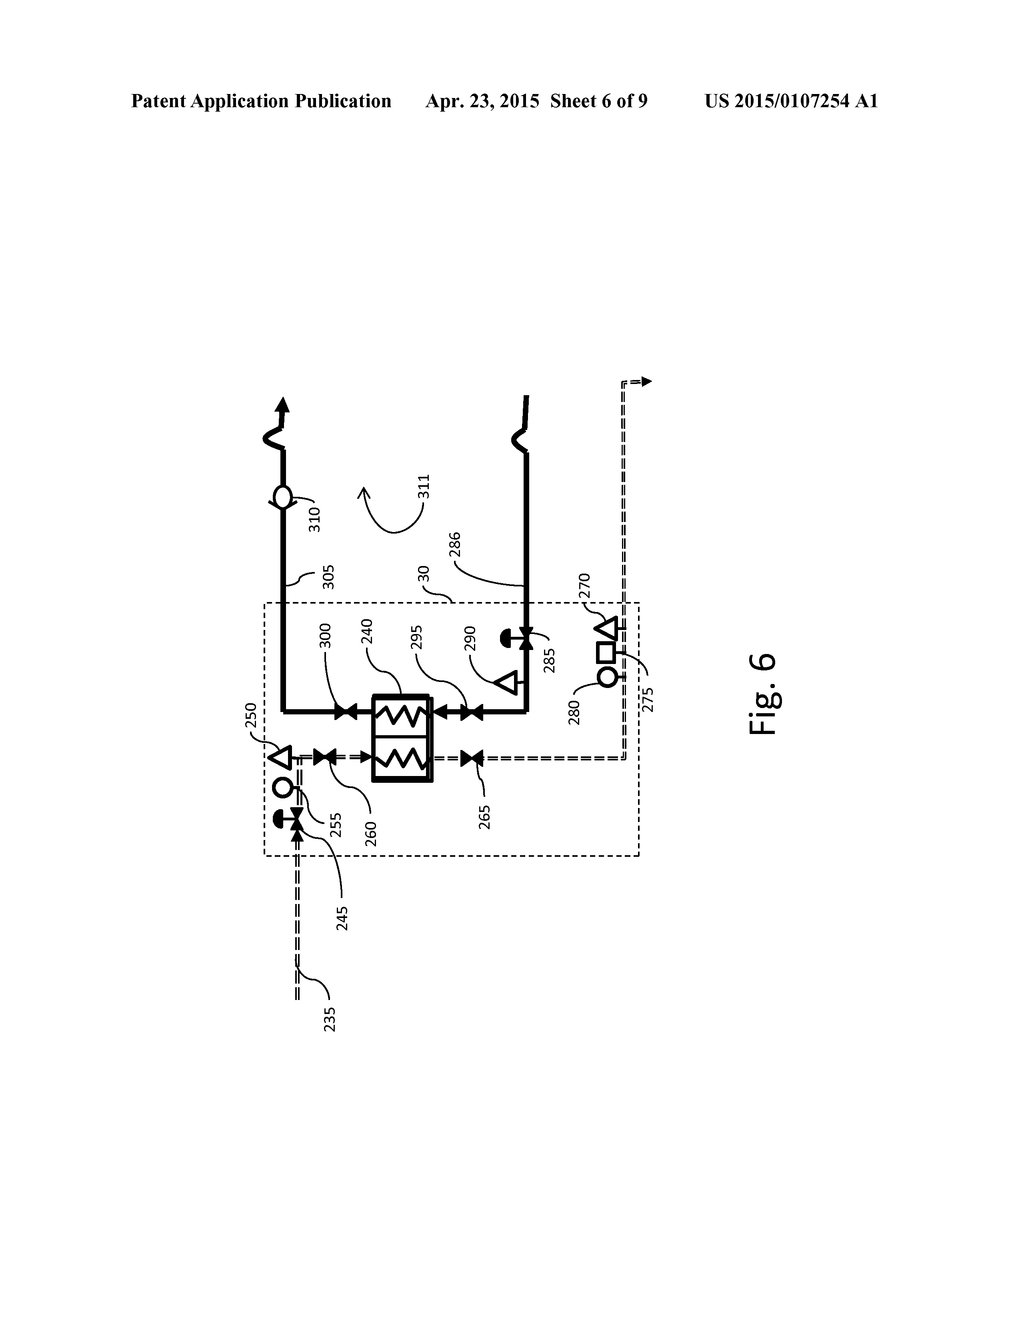 hight resolution of method and system for improving the efficiency of a simple cycle gas turbine system with a closed circuit fuel heating system diagram schematic